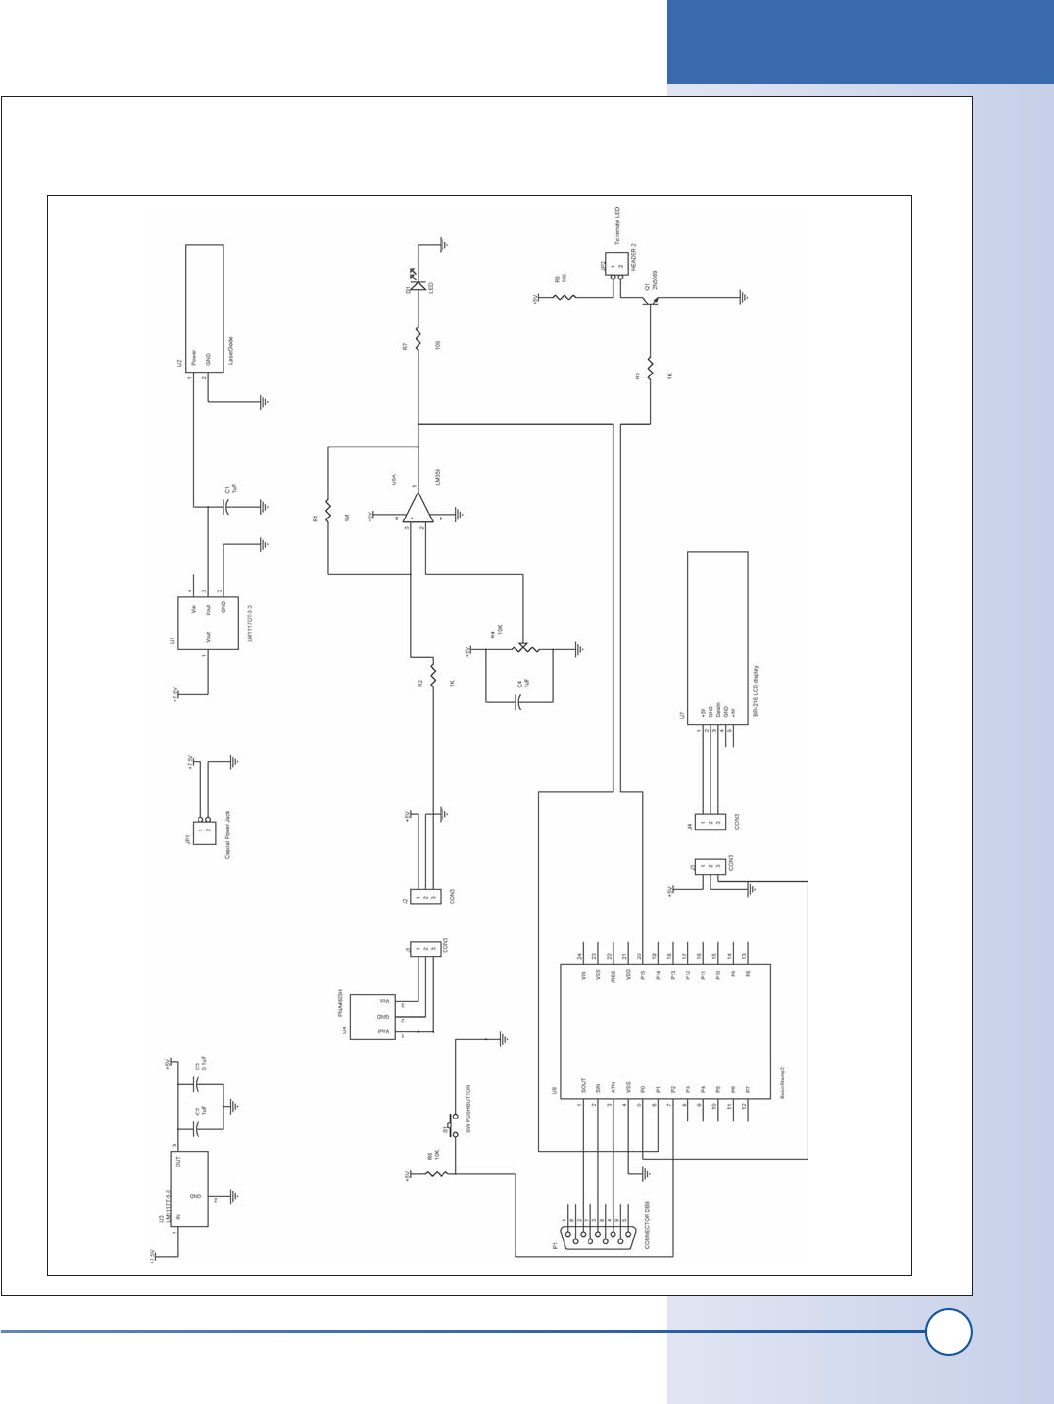 Exhibit F Small Scale Shift Register Schematic Hardware Hacking Circuit Diagram With Safari You Learn The Way Best Get Unlimited Access To Videos Live Online Training Learning Paths Books Tutorials And More